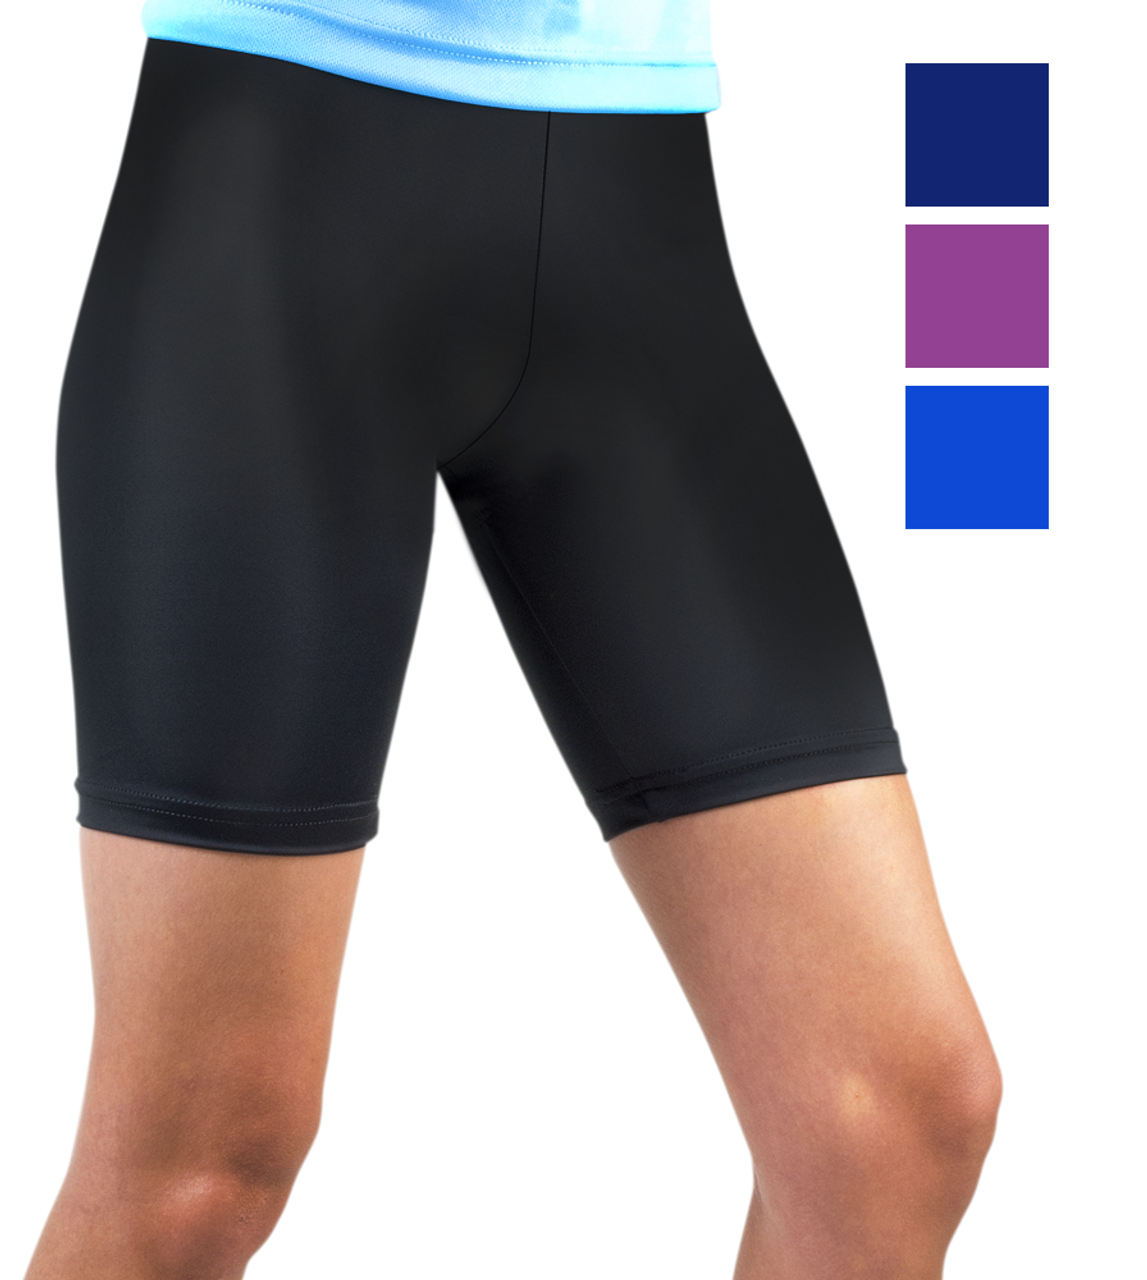 b973c9d93f7d3 Women's Compression Spandex Workout Shorts USA Made Fitness Apparel